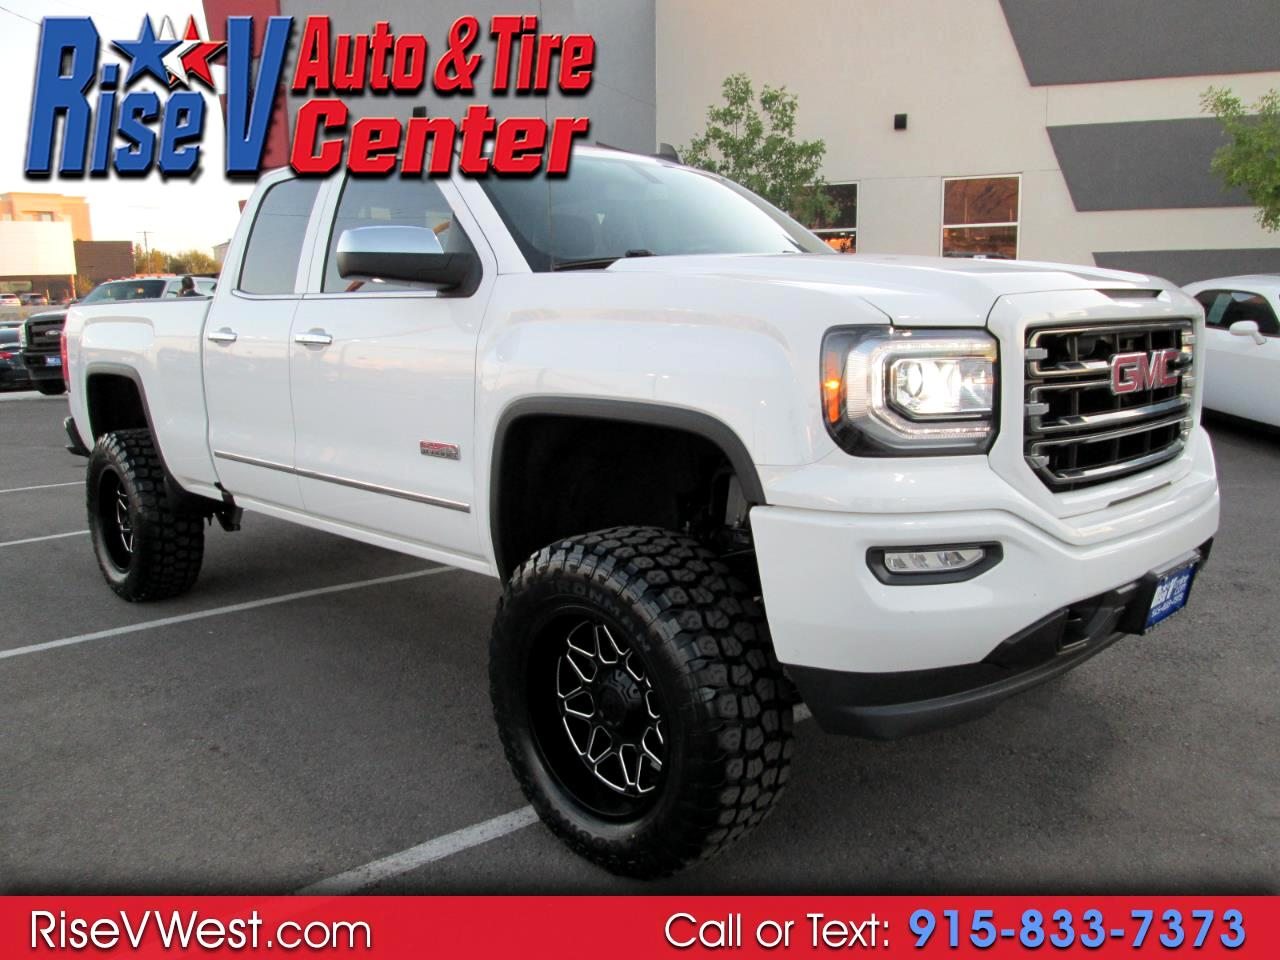 2016 GMC Sierra 1500 4WD Double Cab SLT All Terrain